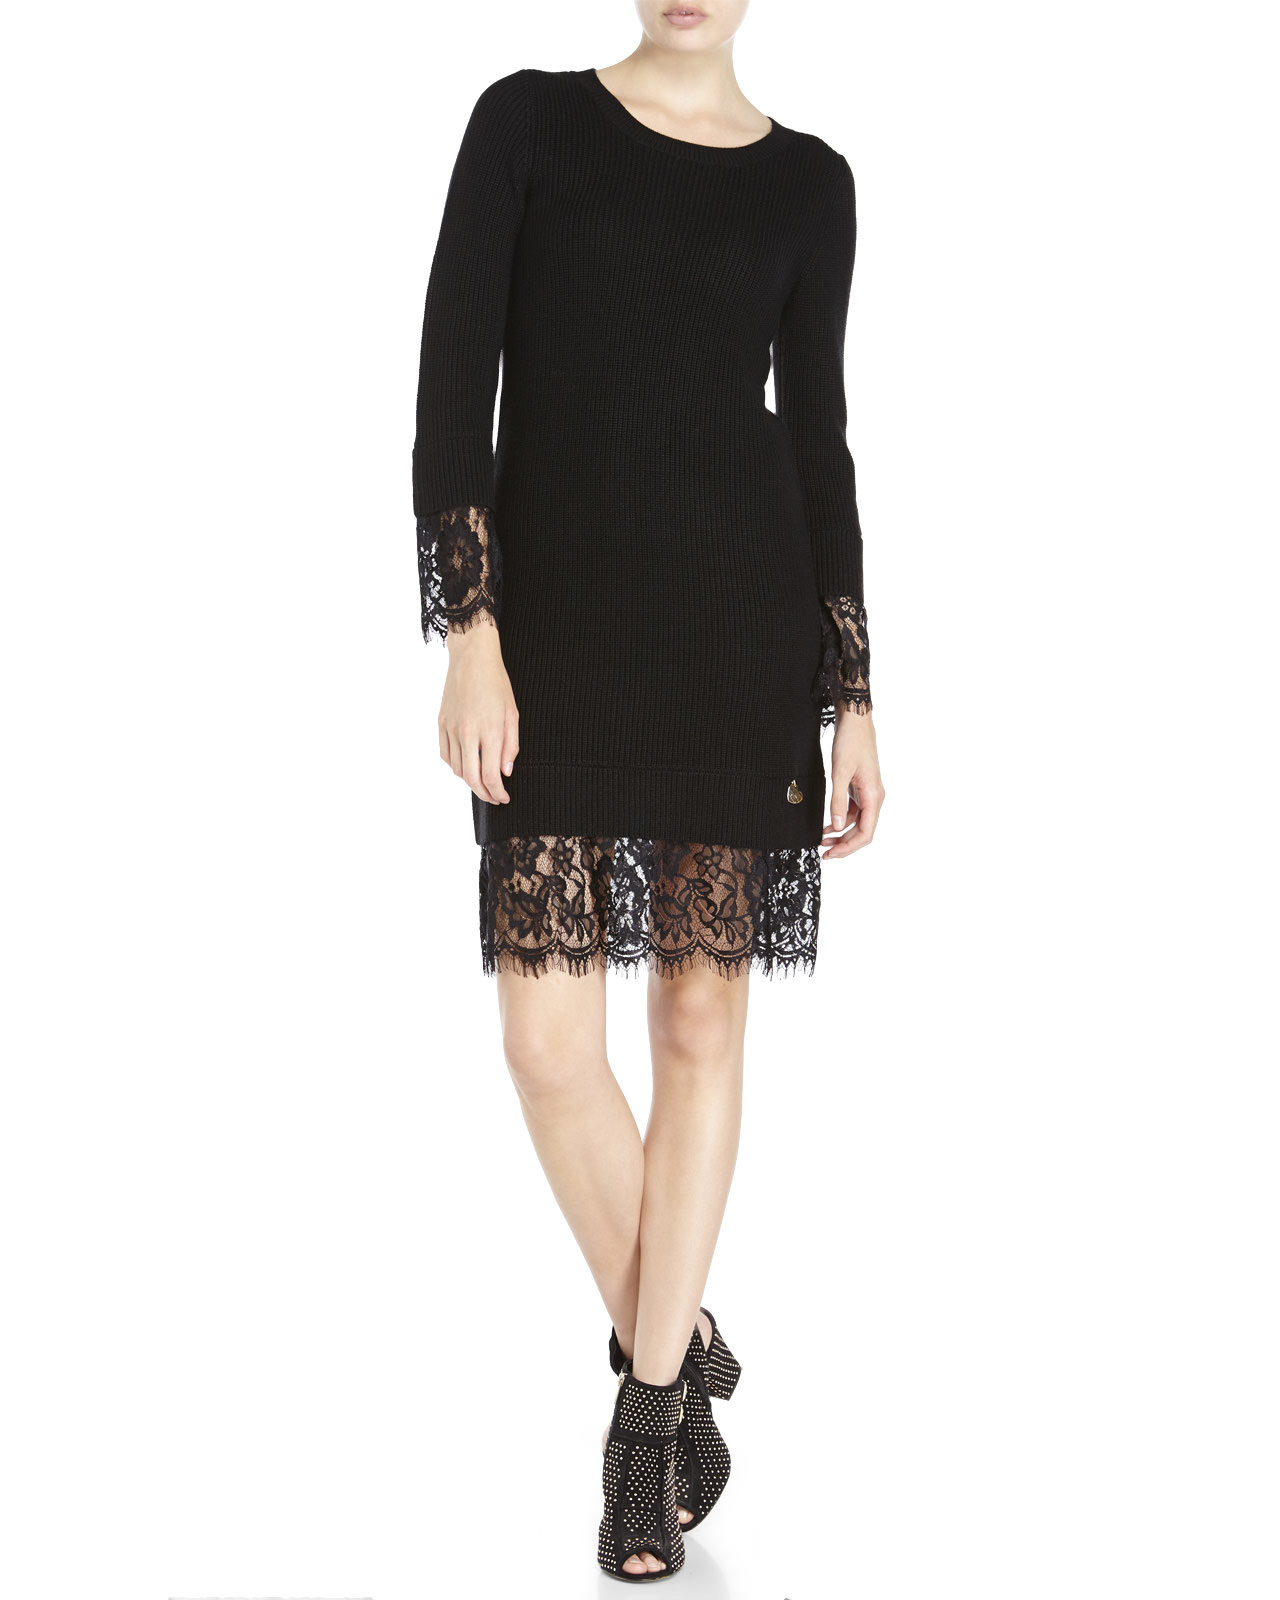 fbe55a4fe32 Lyst - Love Moschino Lace Trim Sweater Dress in Black